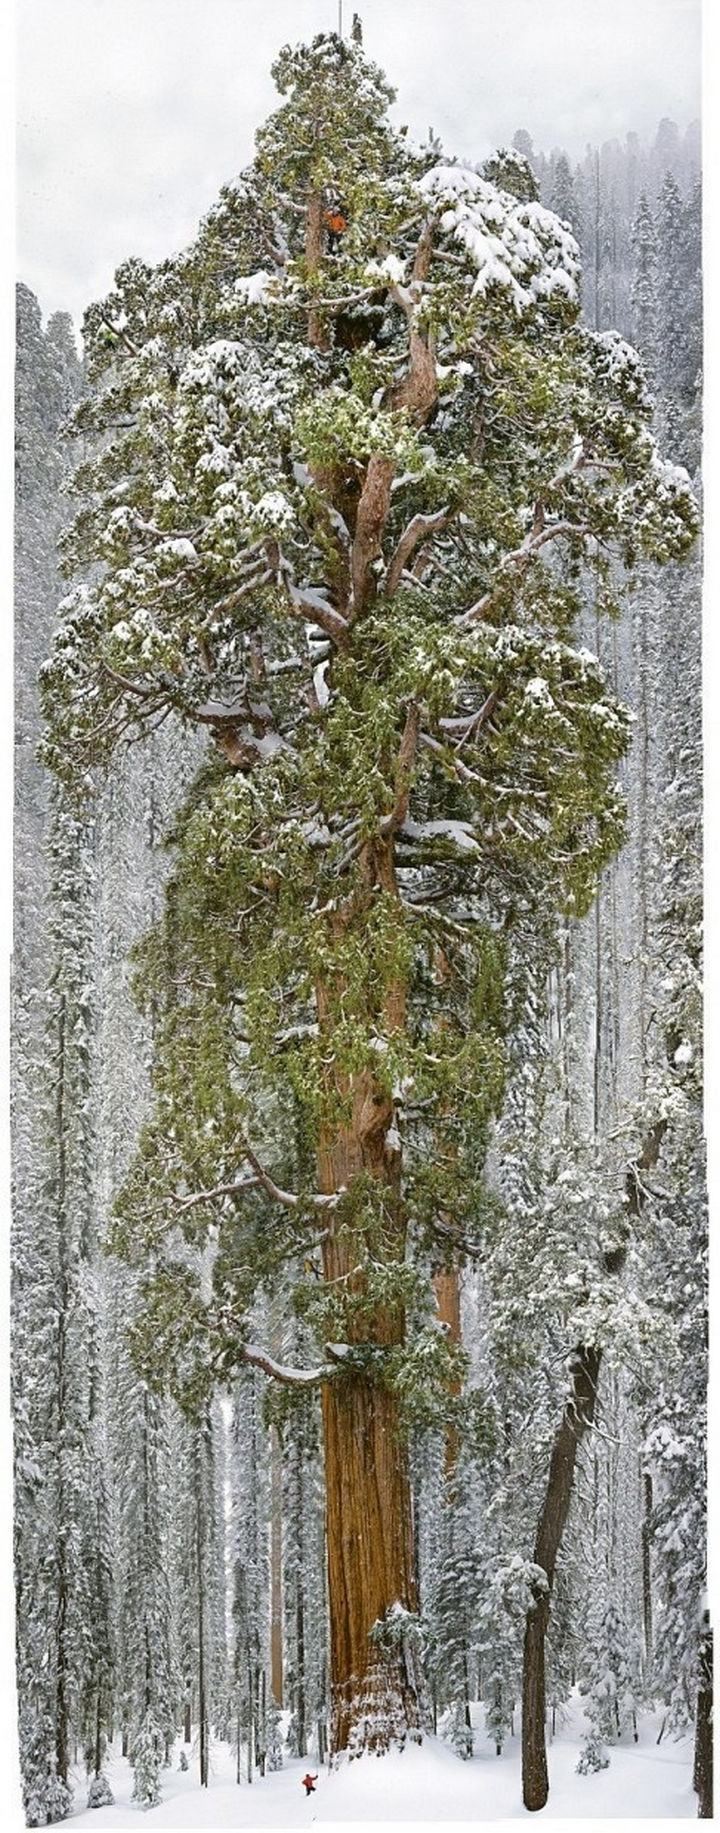 """""""The President"""" sequoia tree is the second largest tree in the world. It is 27 feet in diameter, 247 feet in length, has 2 billion leaves, and is 3,200 years old!"""